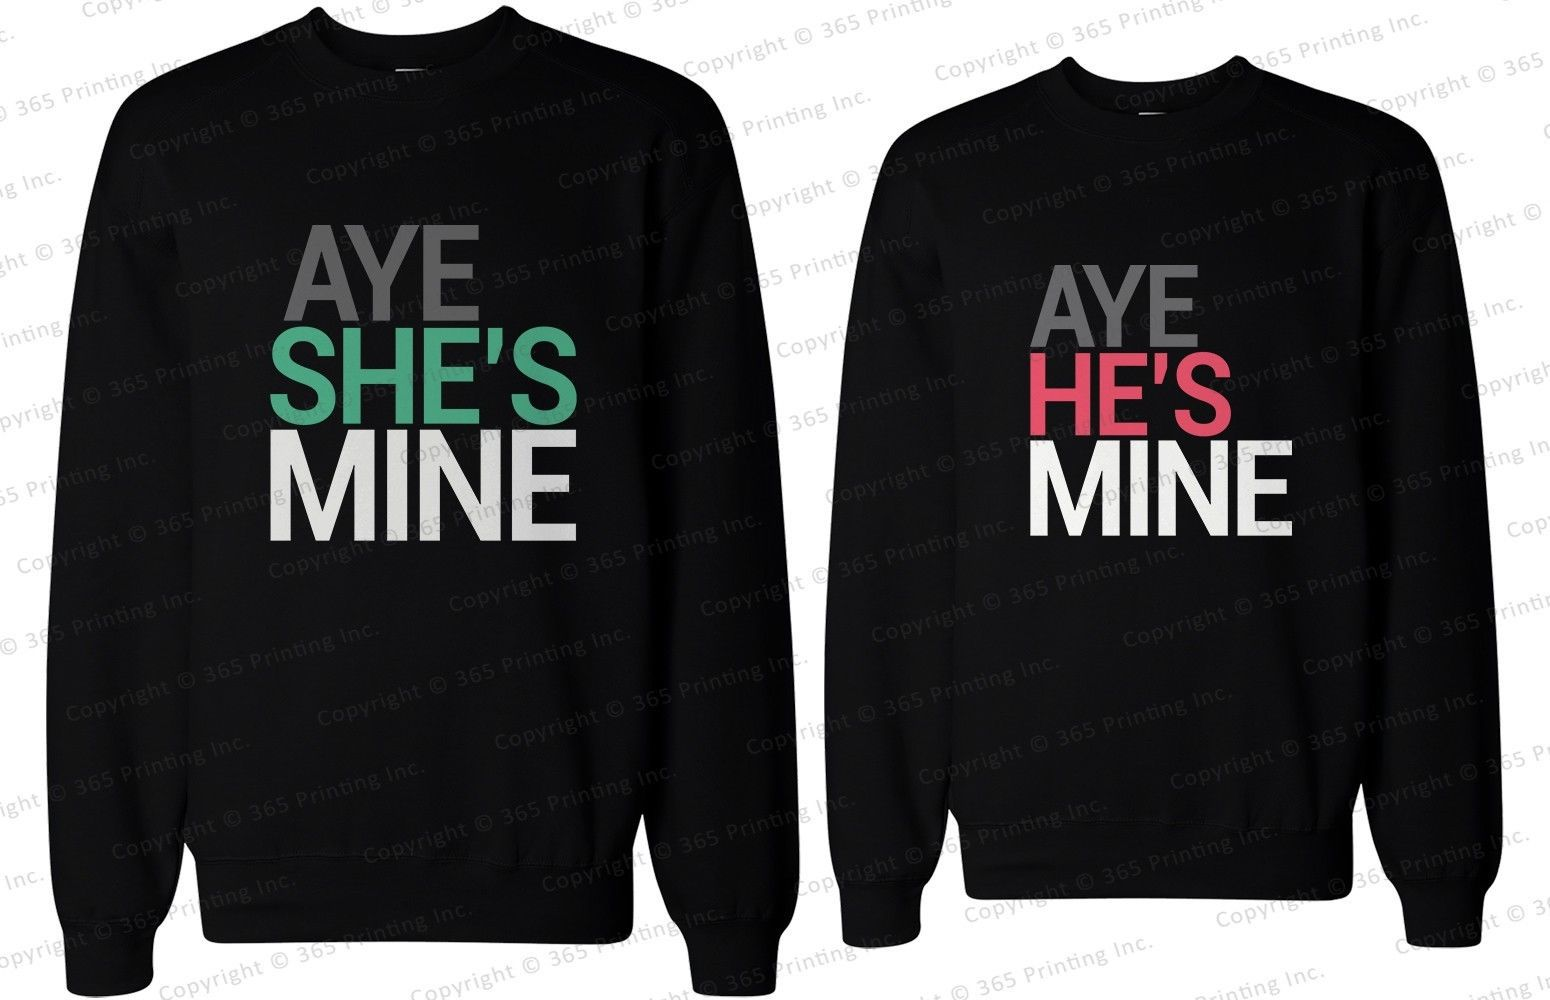 His and Her Matching Couple Sweatshirts - Aye She's Mine, Aye He's Mine